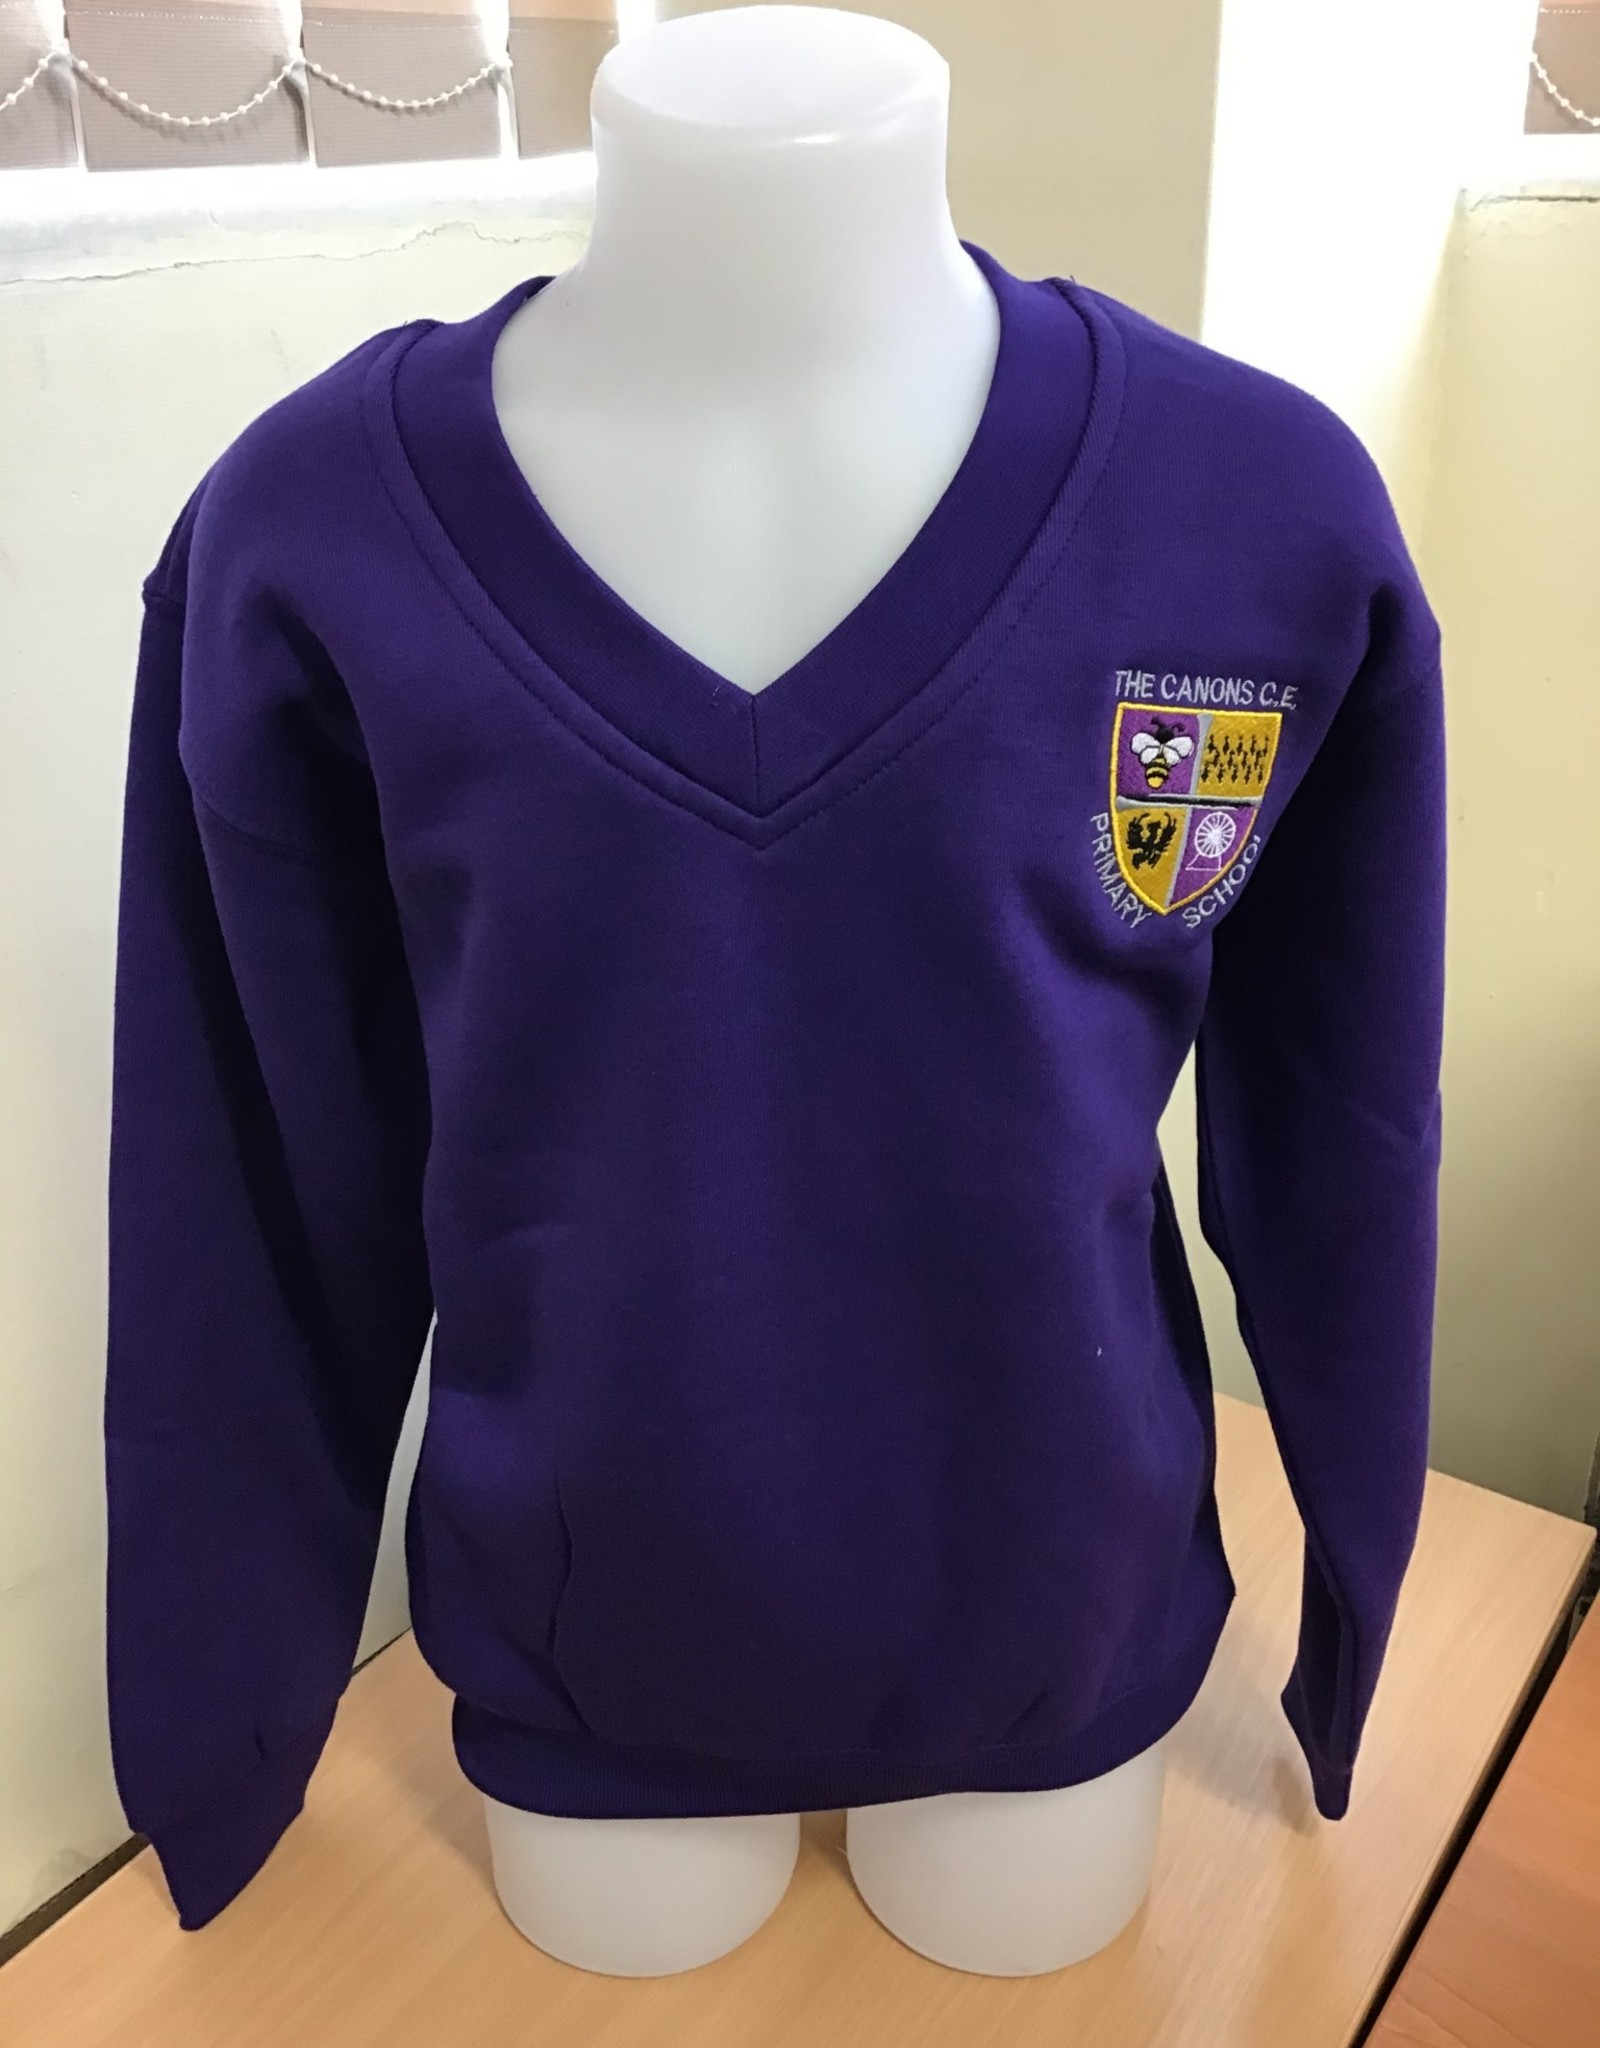 V-Neck Sweatshirt Child Size - The Canons CE Primary School